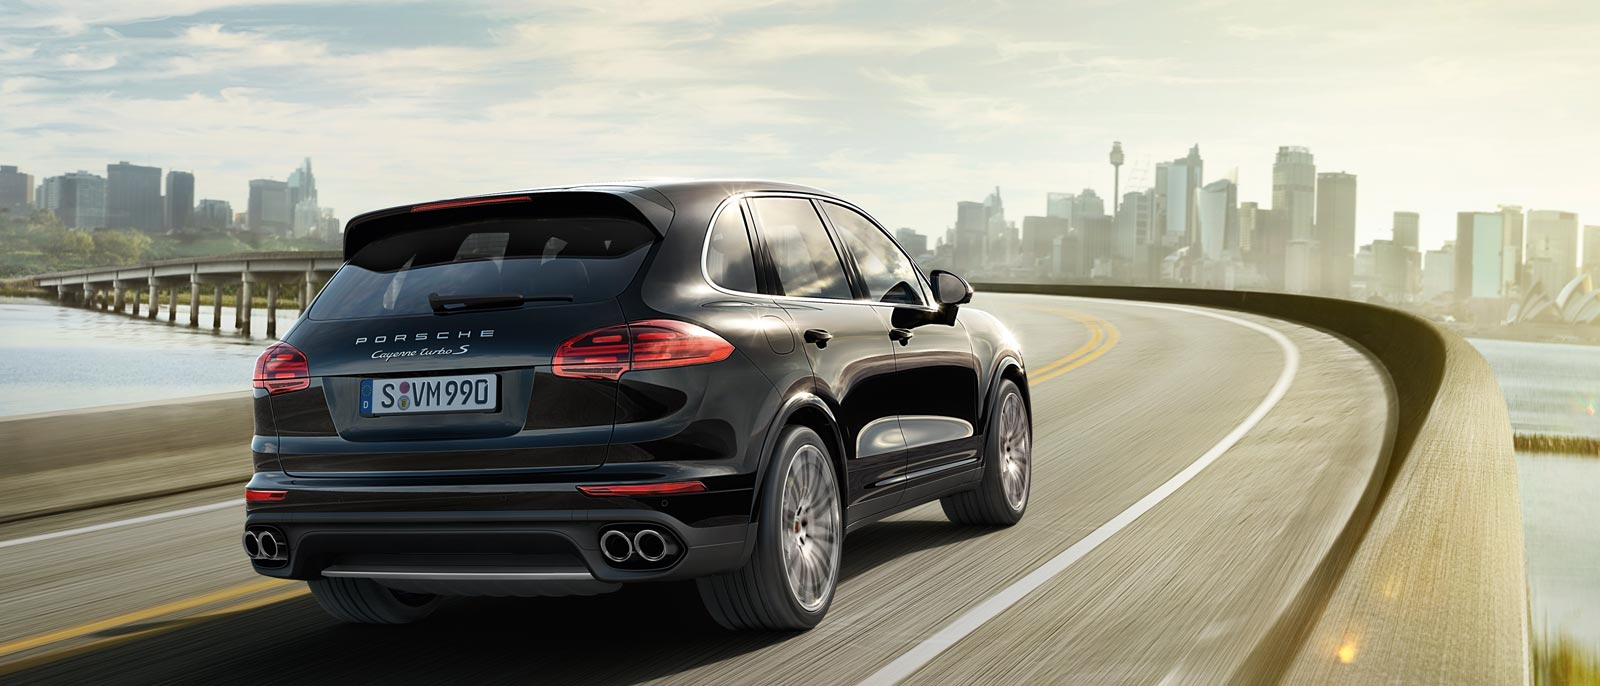 2015 porsche cayenne turbo s naperville orland park porsche orland park. Black Bedroom Furniture Sets. Home Design Ideas